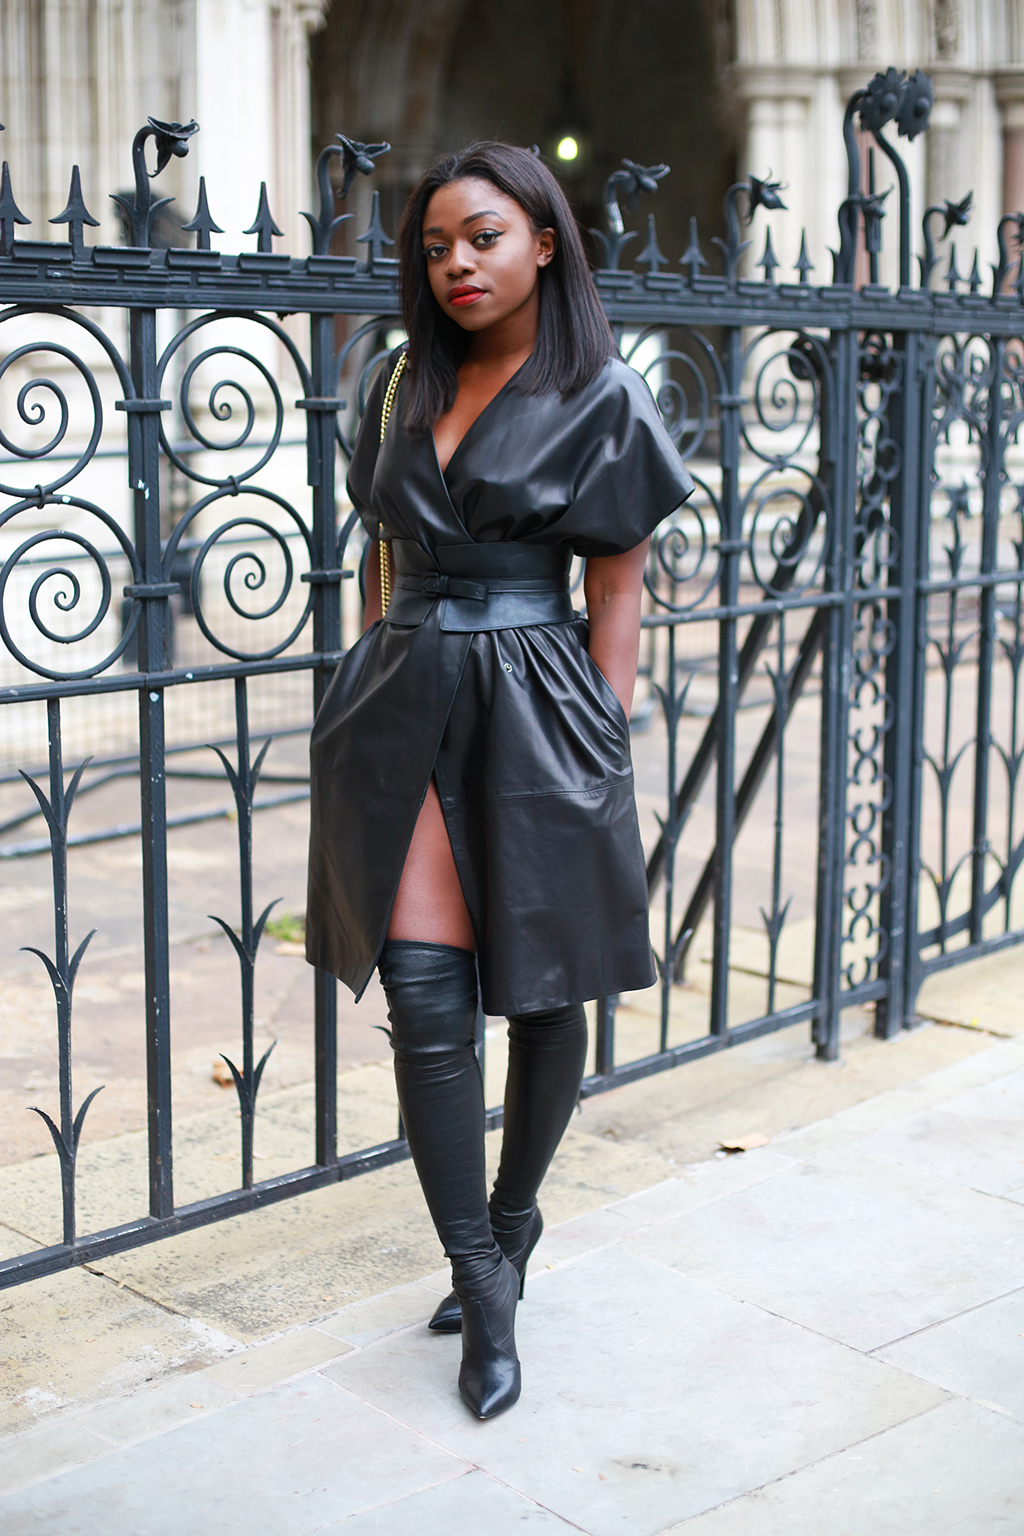 pictorial-reasons-need-invest-kim-kardashian-type-thigh-high-boots-season